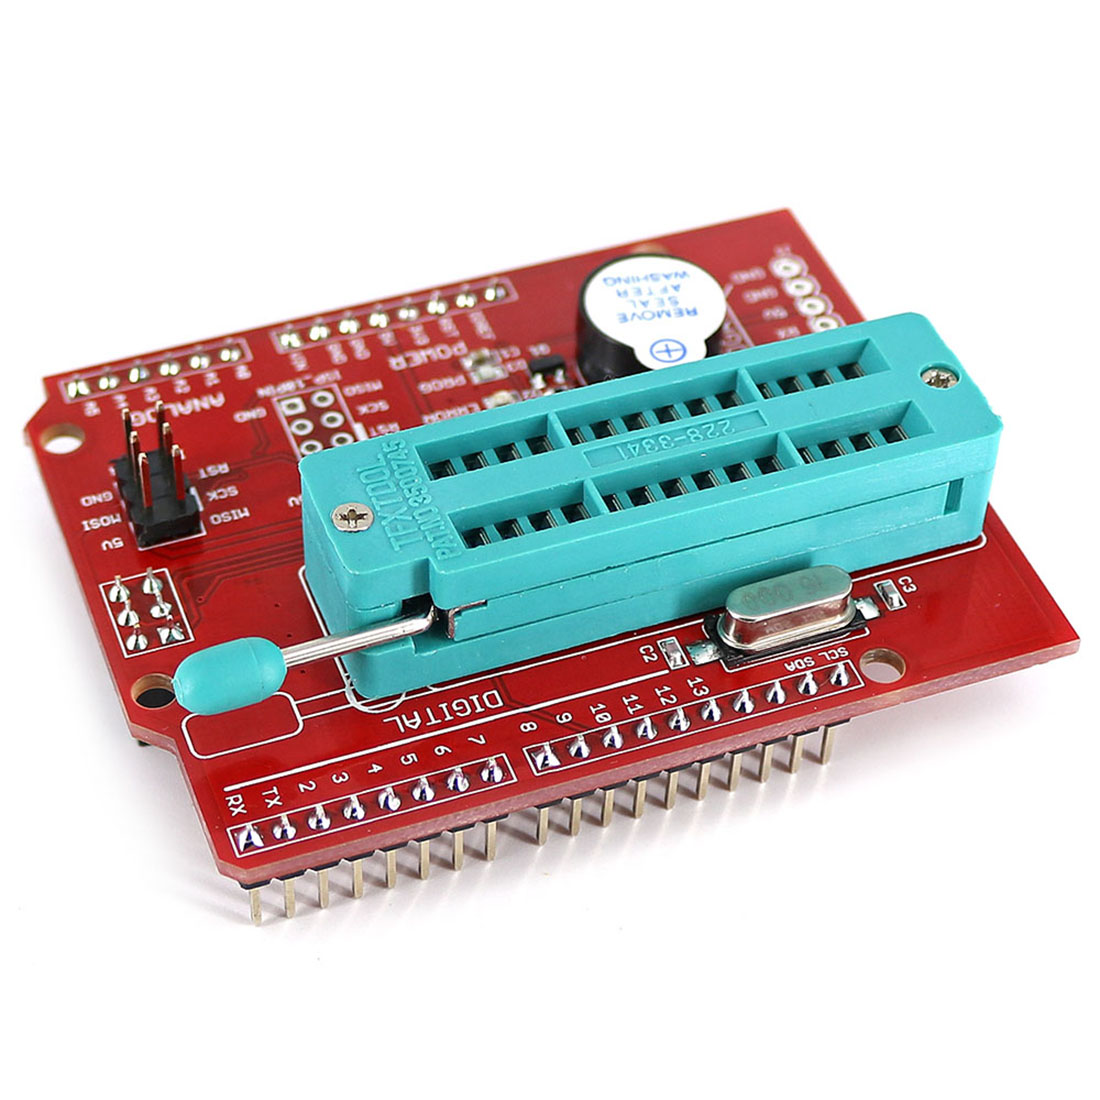 High Quality AVR ISP Shield Burning Bootloader Programmer For Arduino UNO R3  Programable Toys Accessories